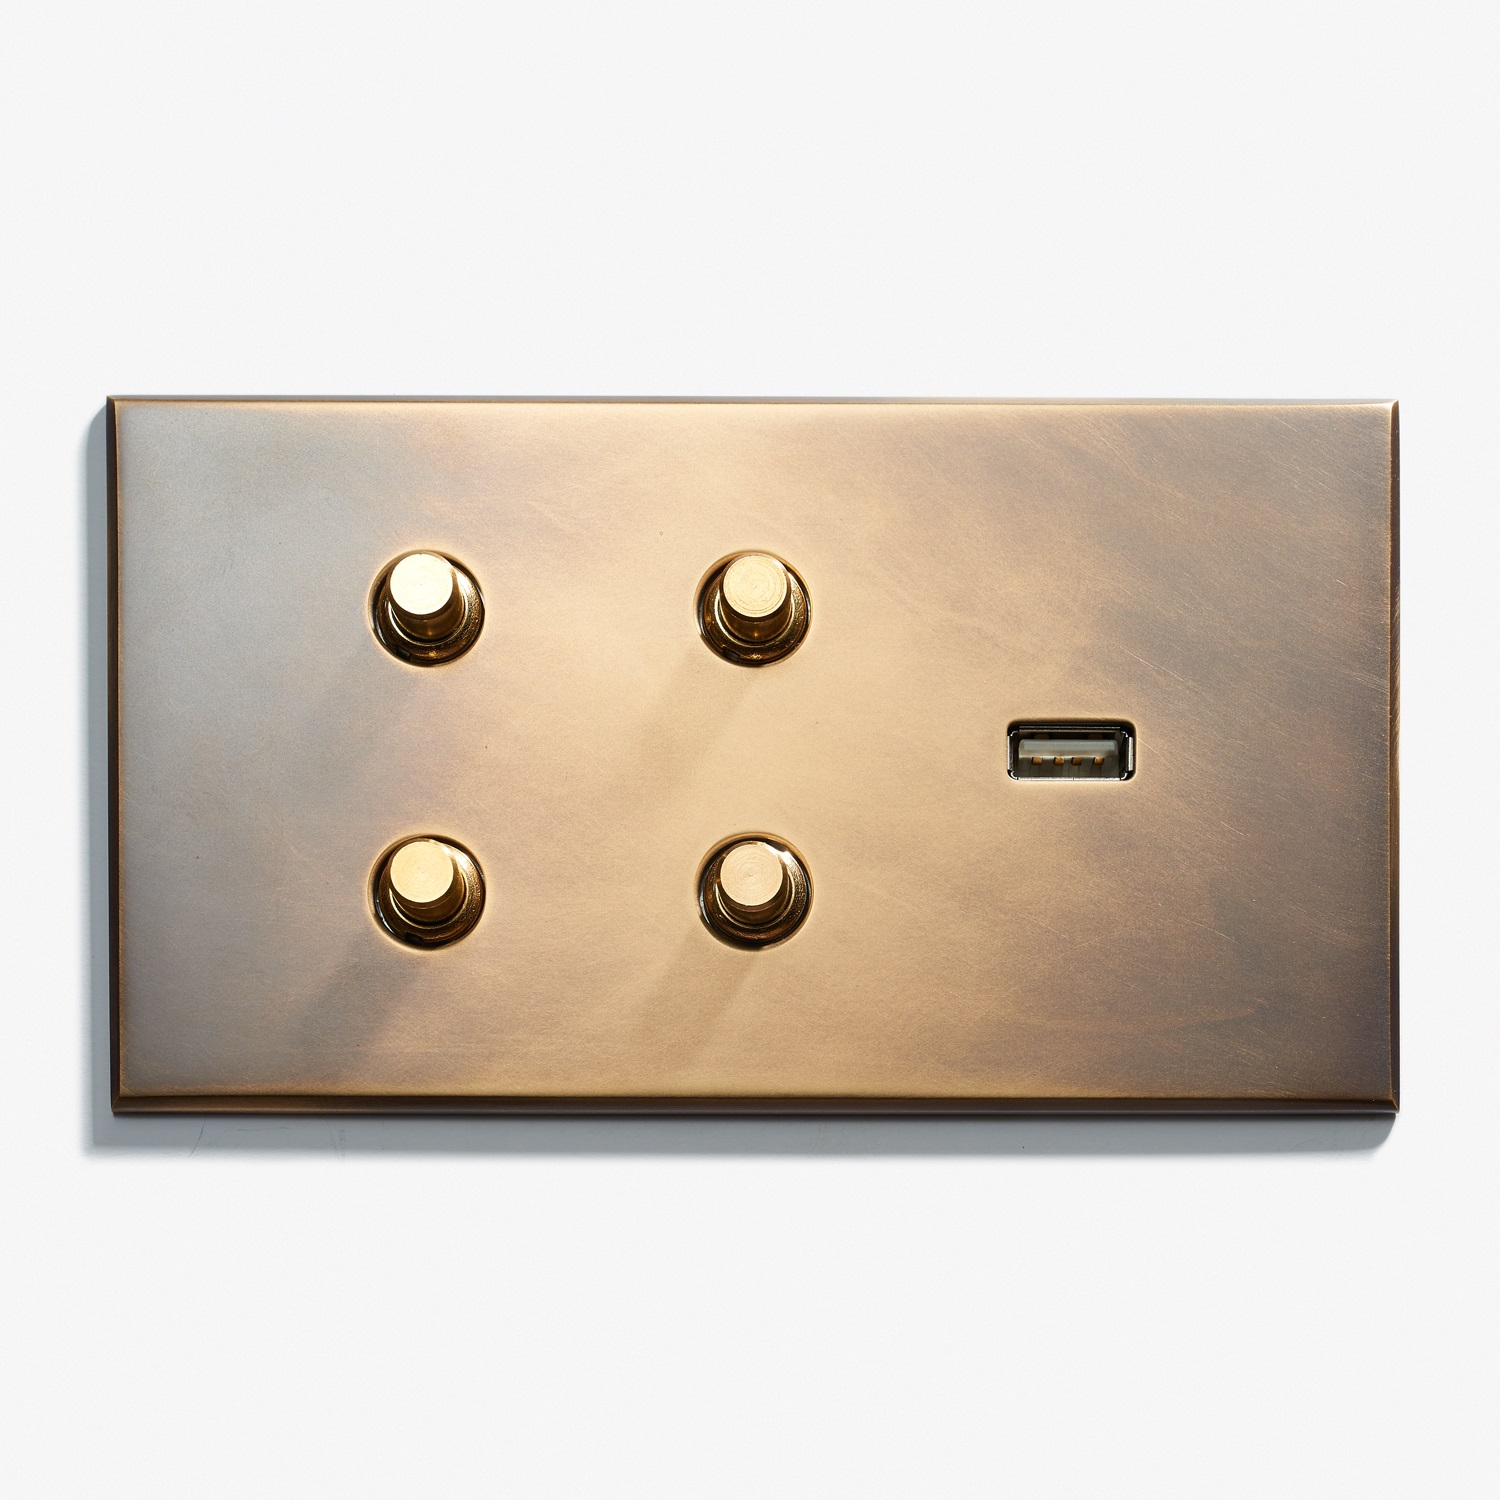 144 x 82 - 4 BP + 1 USB - Hidden Screws - Beveled Edge - Antique Brass 1  .jpg